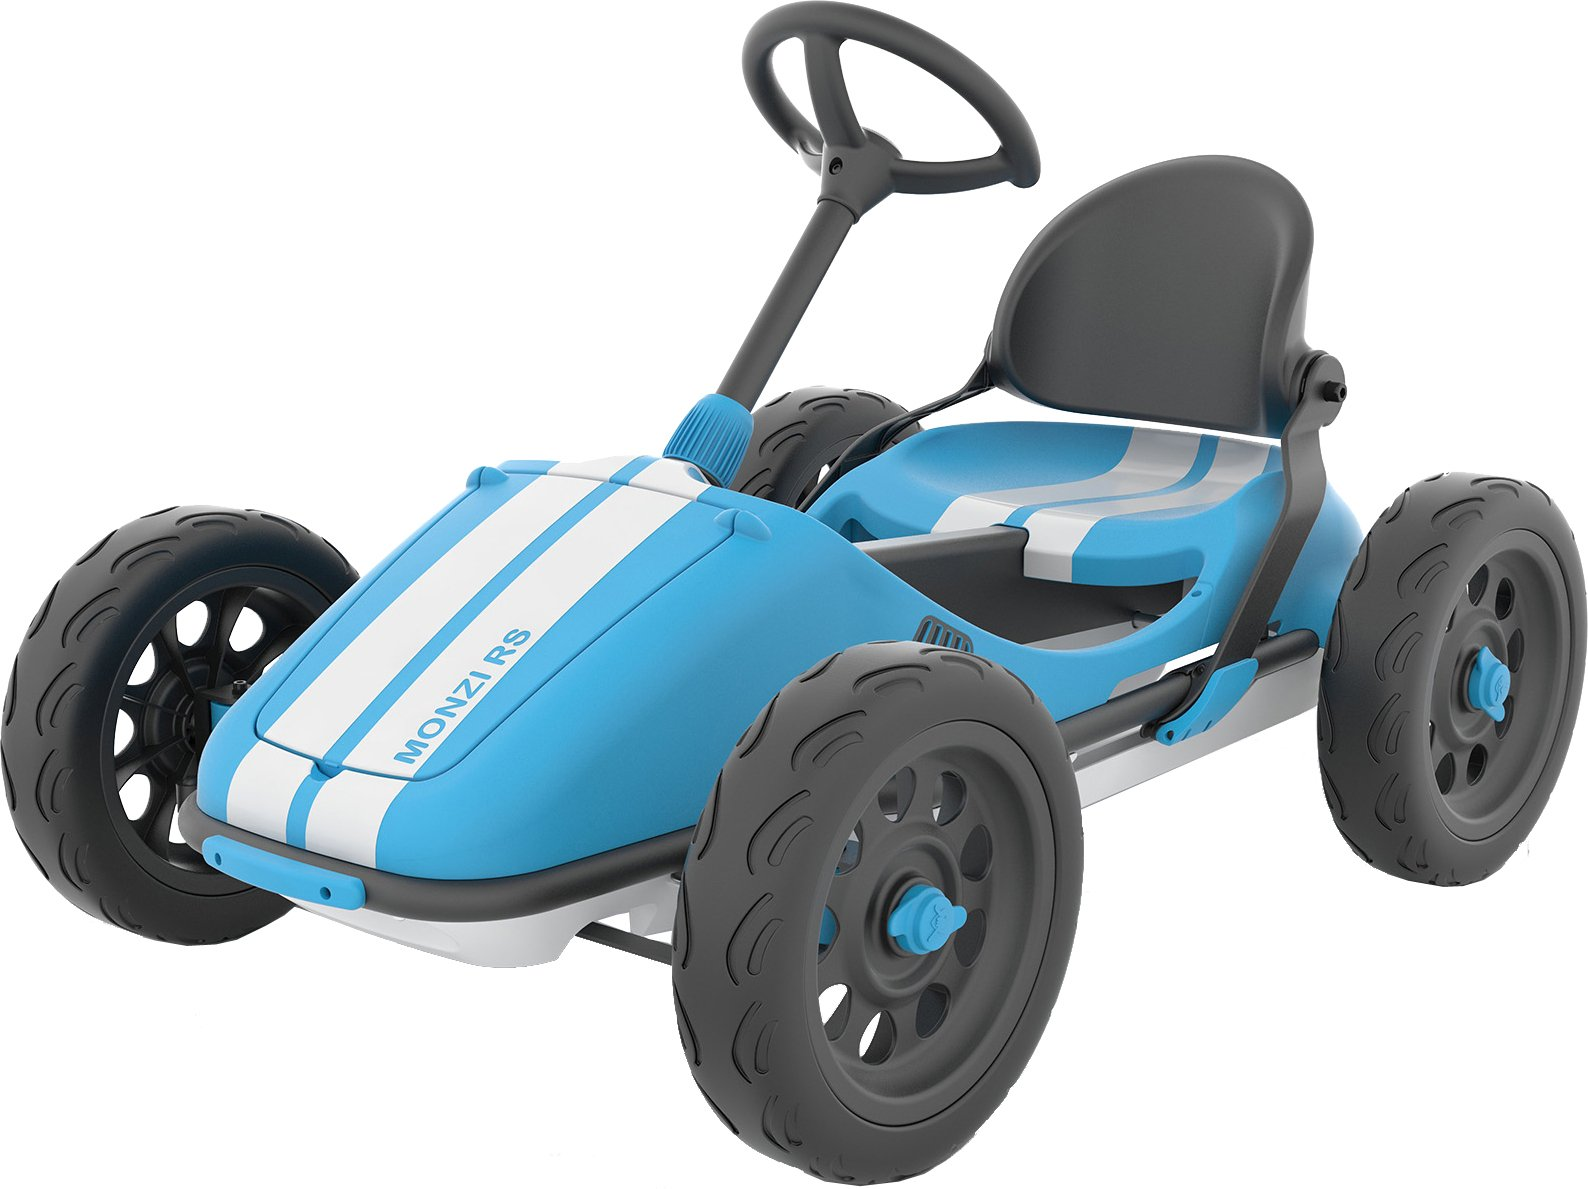 Chillafish Monzi RS Kids Foldable Pedal Go-Kart, with Airless RuberSkin Tires, Blue